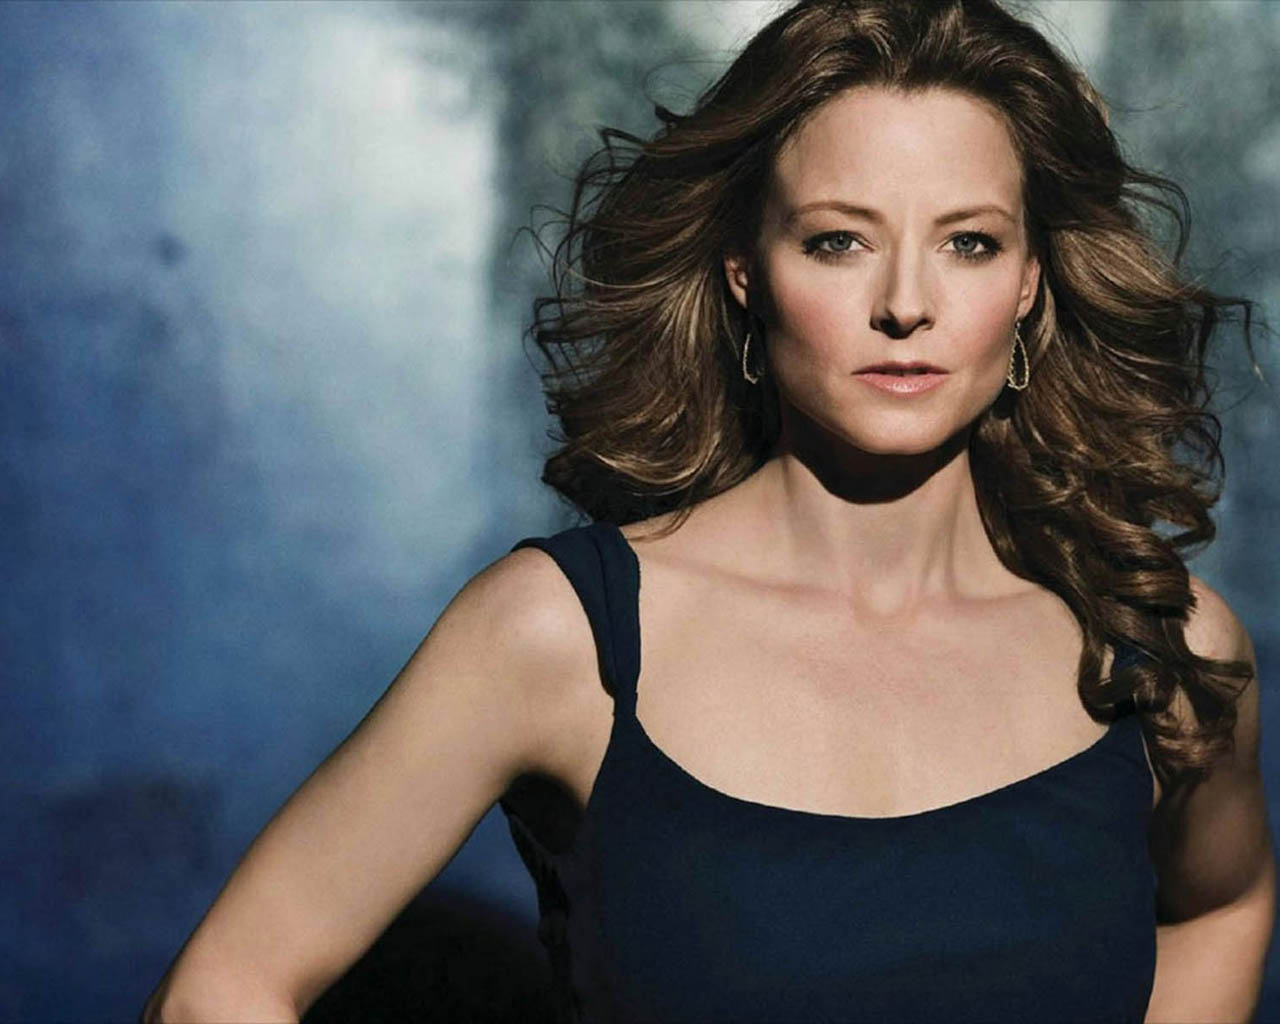 Jodie Foster Profile And Beautiful Latest Hot Wallpaper Astronomy Blog